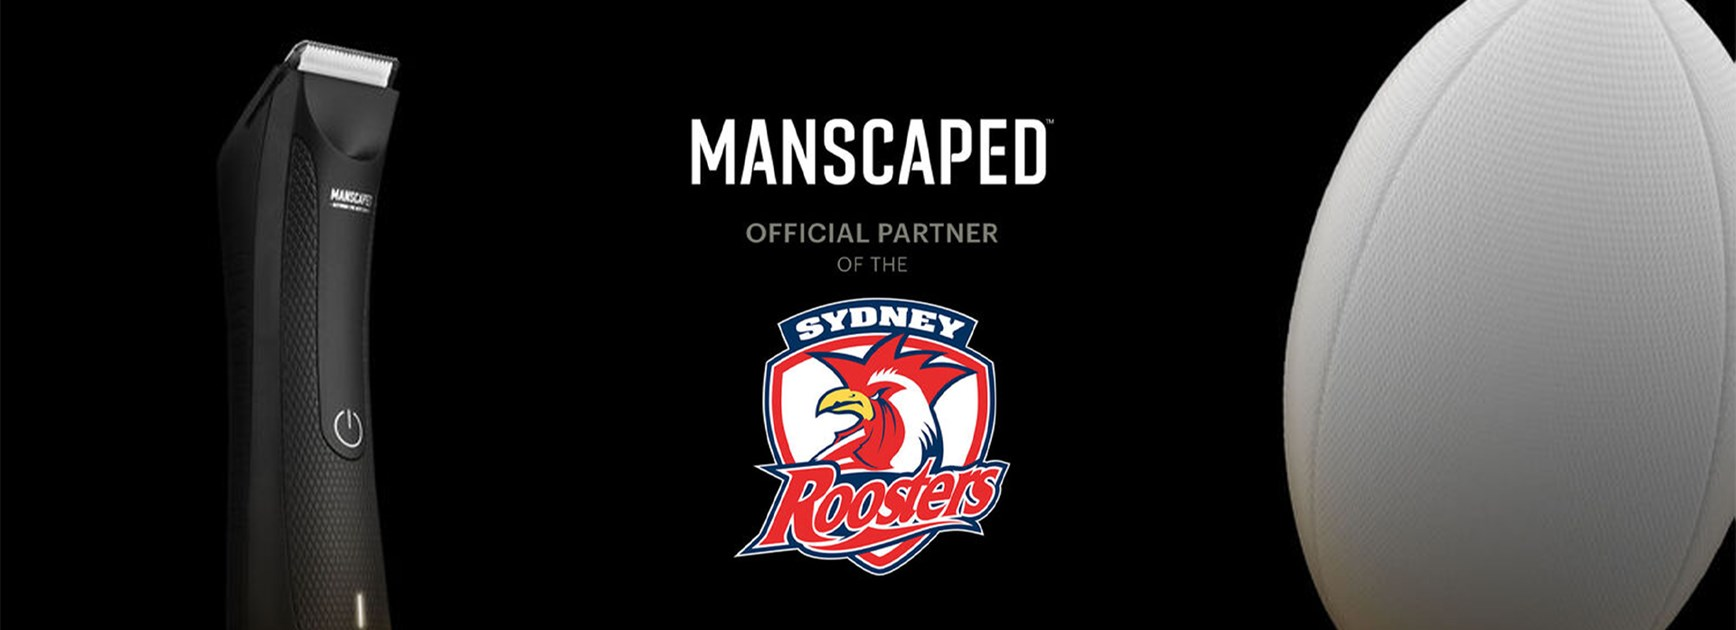 MANSCAPED partner with the Sydney Roosters